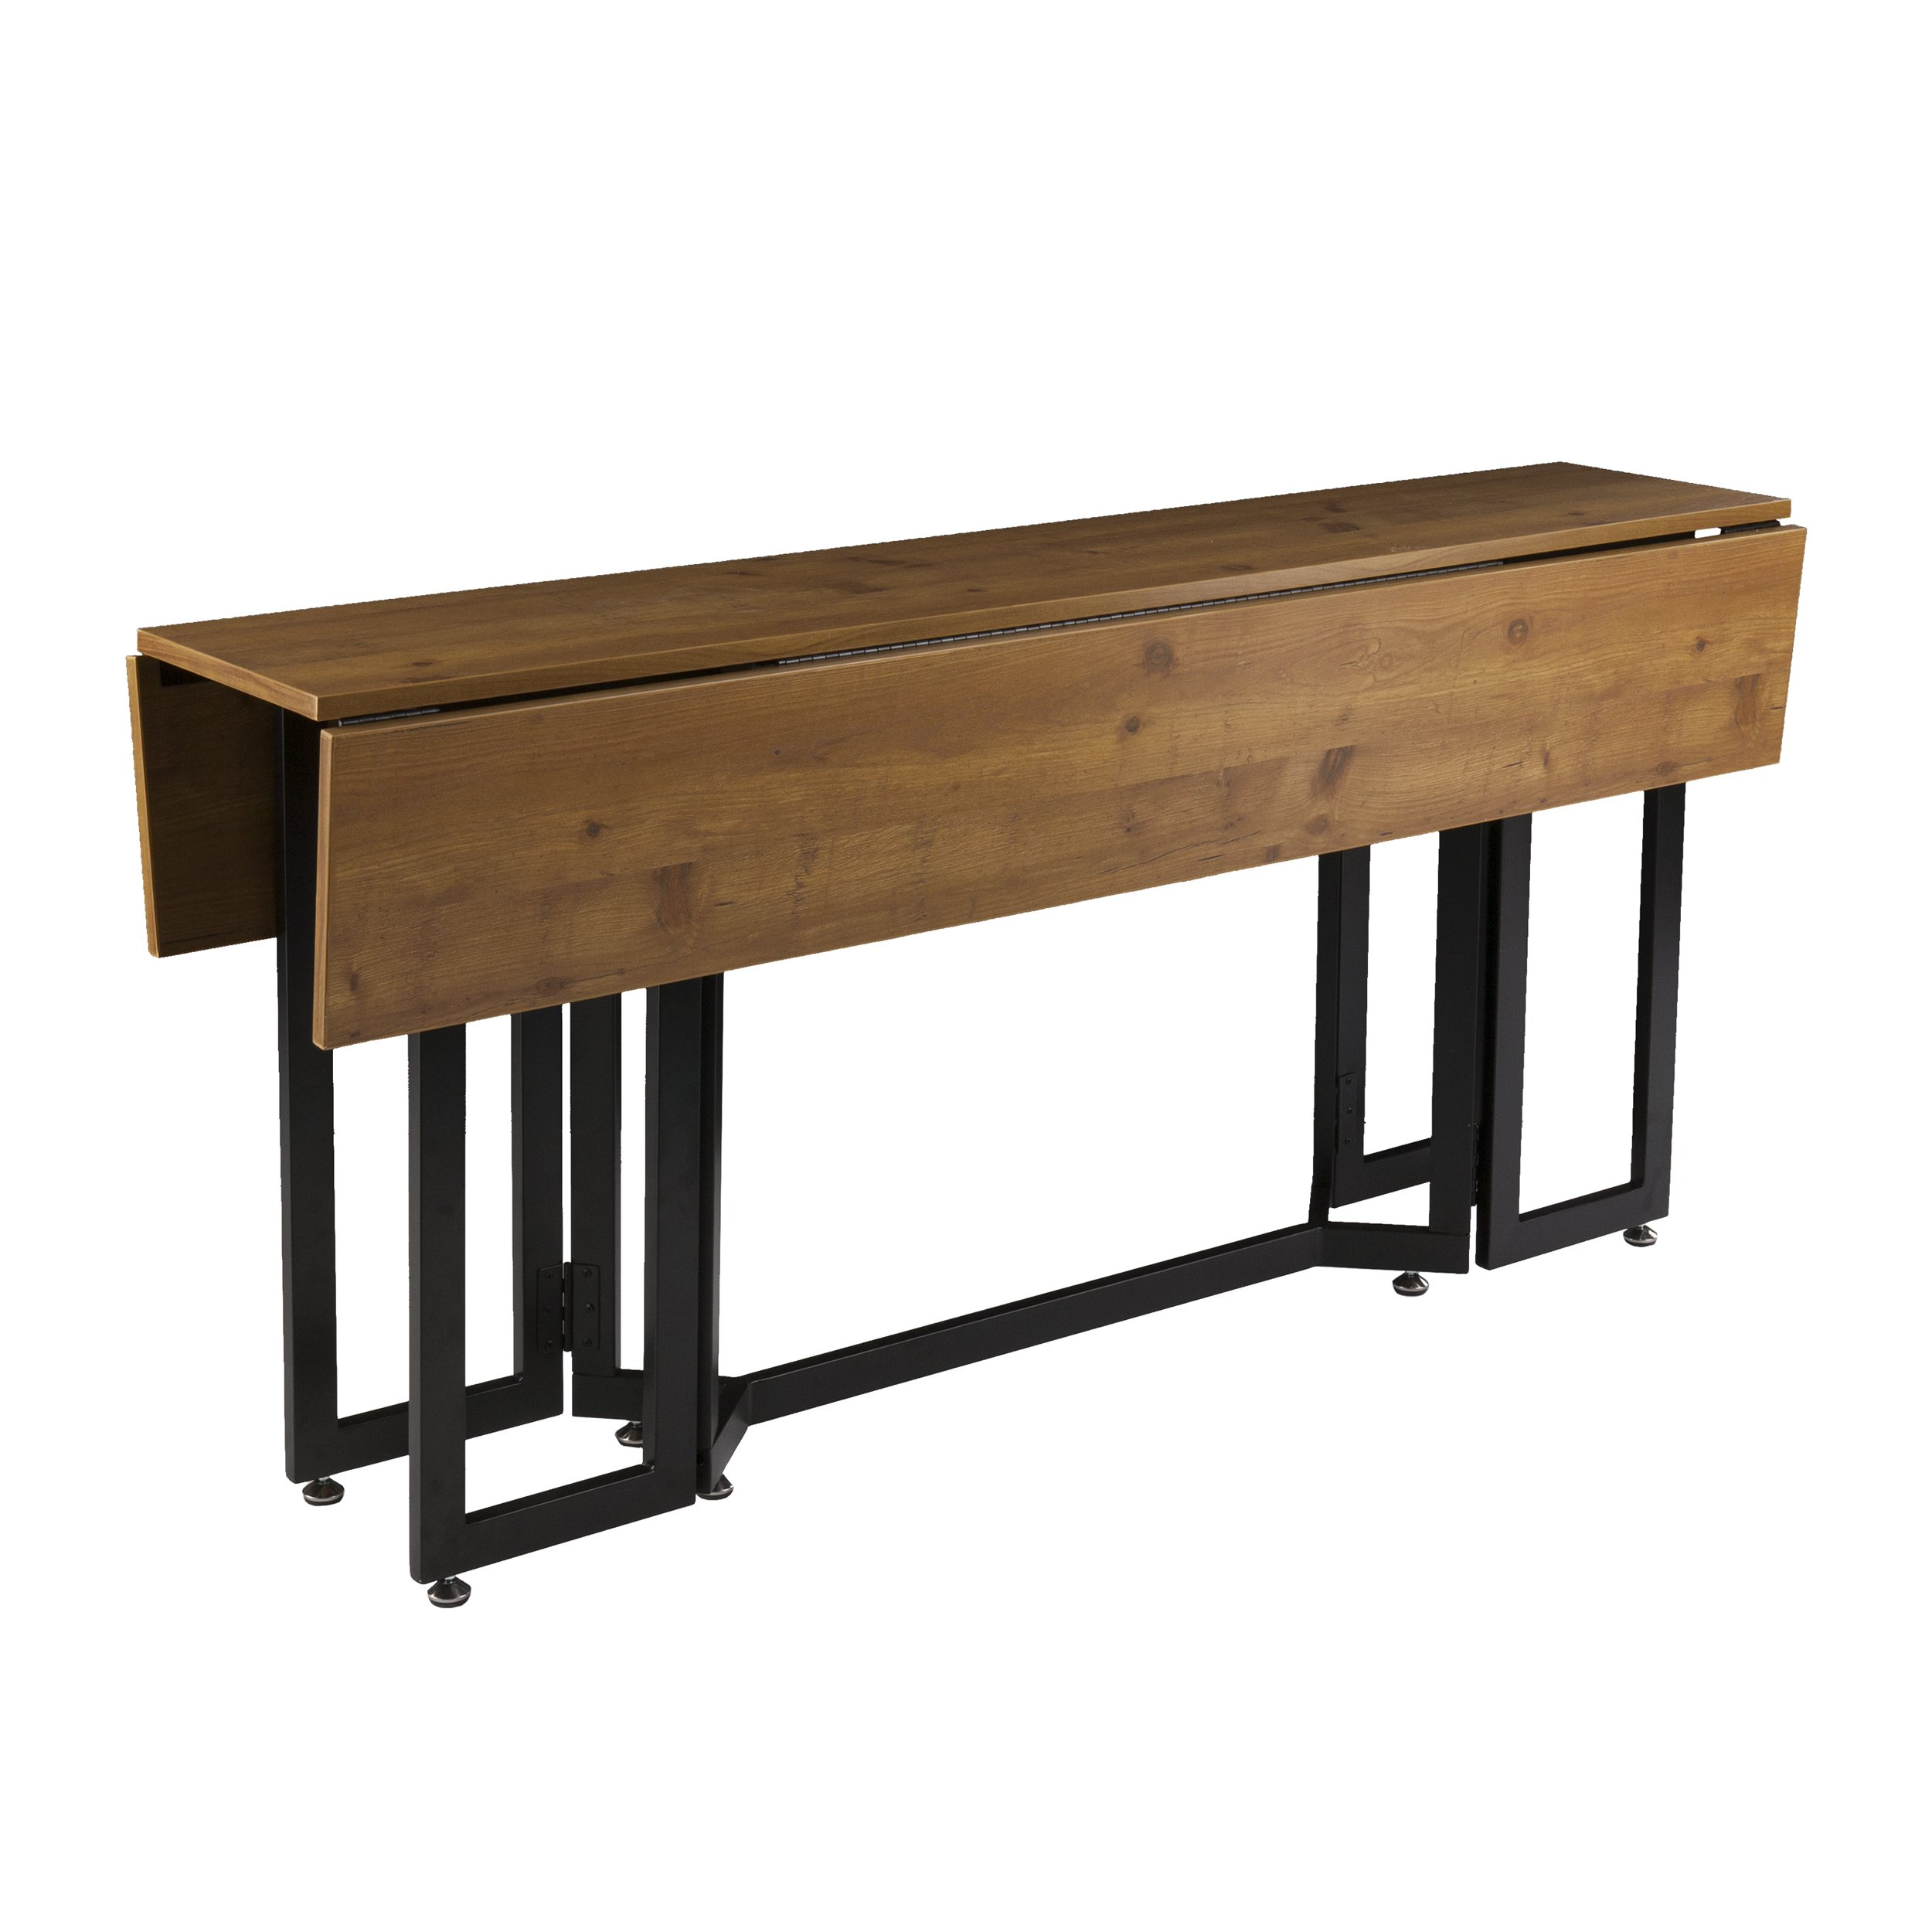 Holly & Martin Driness Drop Leaf Console Dining Table, Weathered Oak Finish with Black Metal Base by Holly & Martin (Image #3)